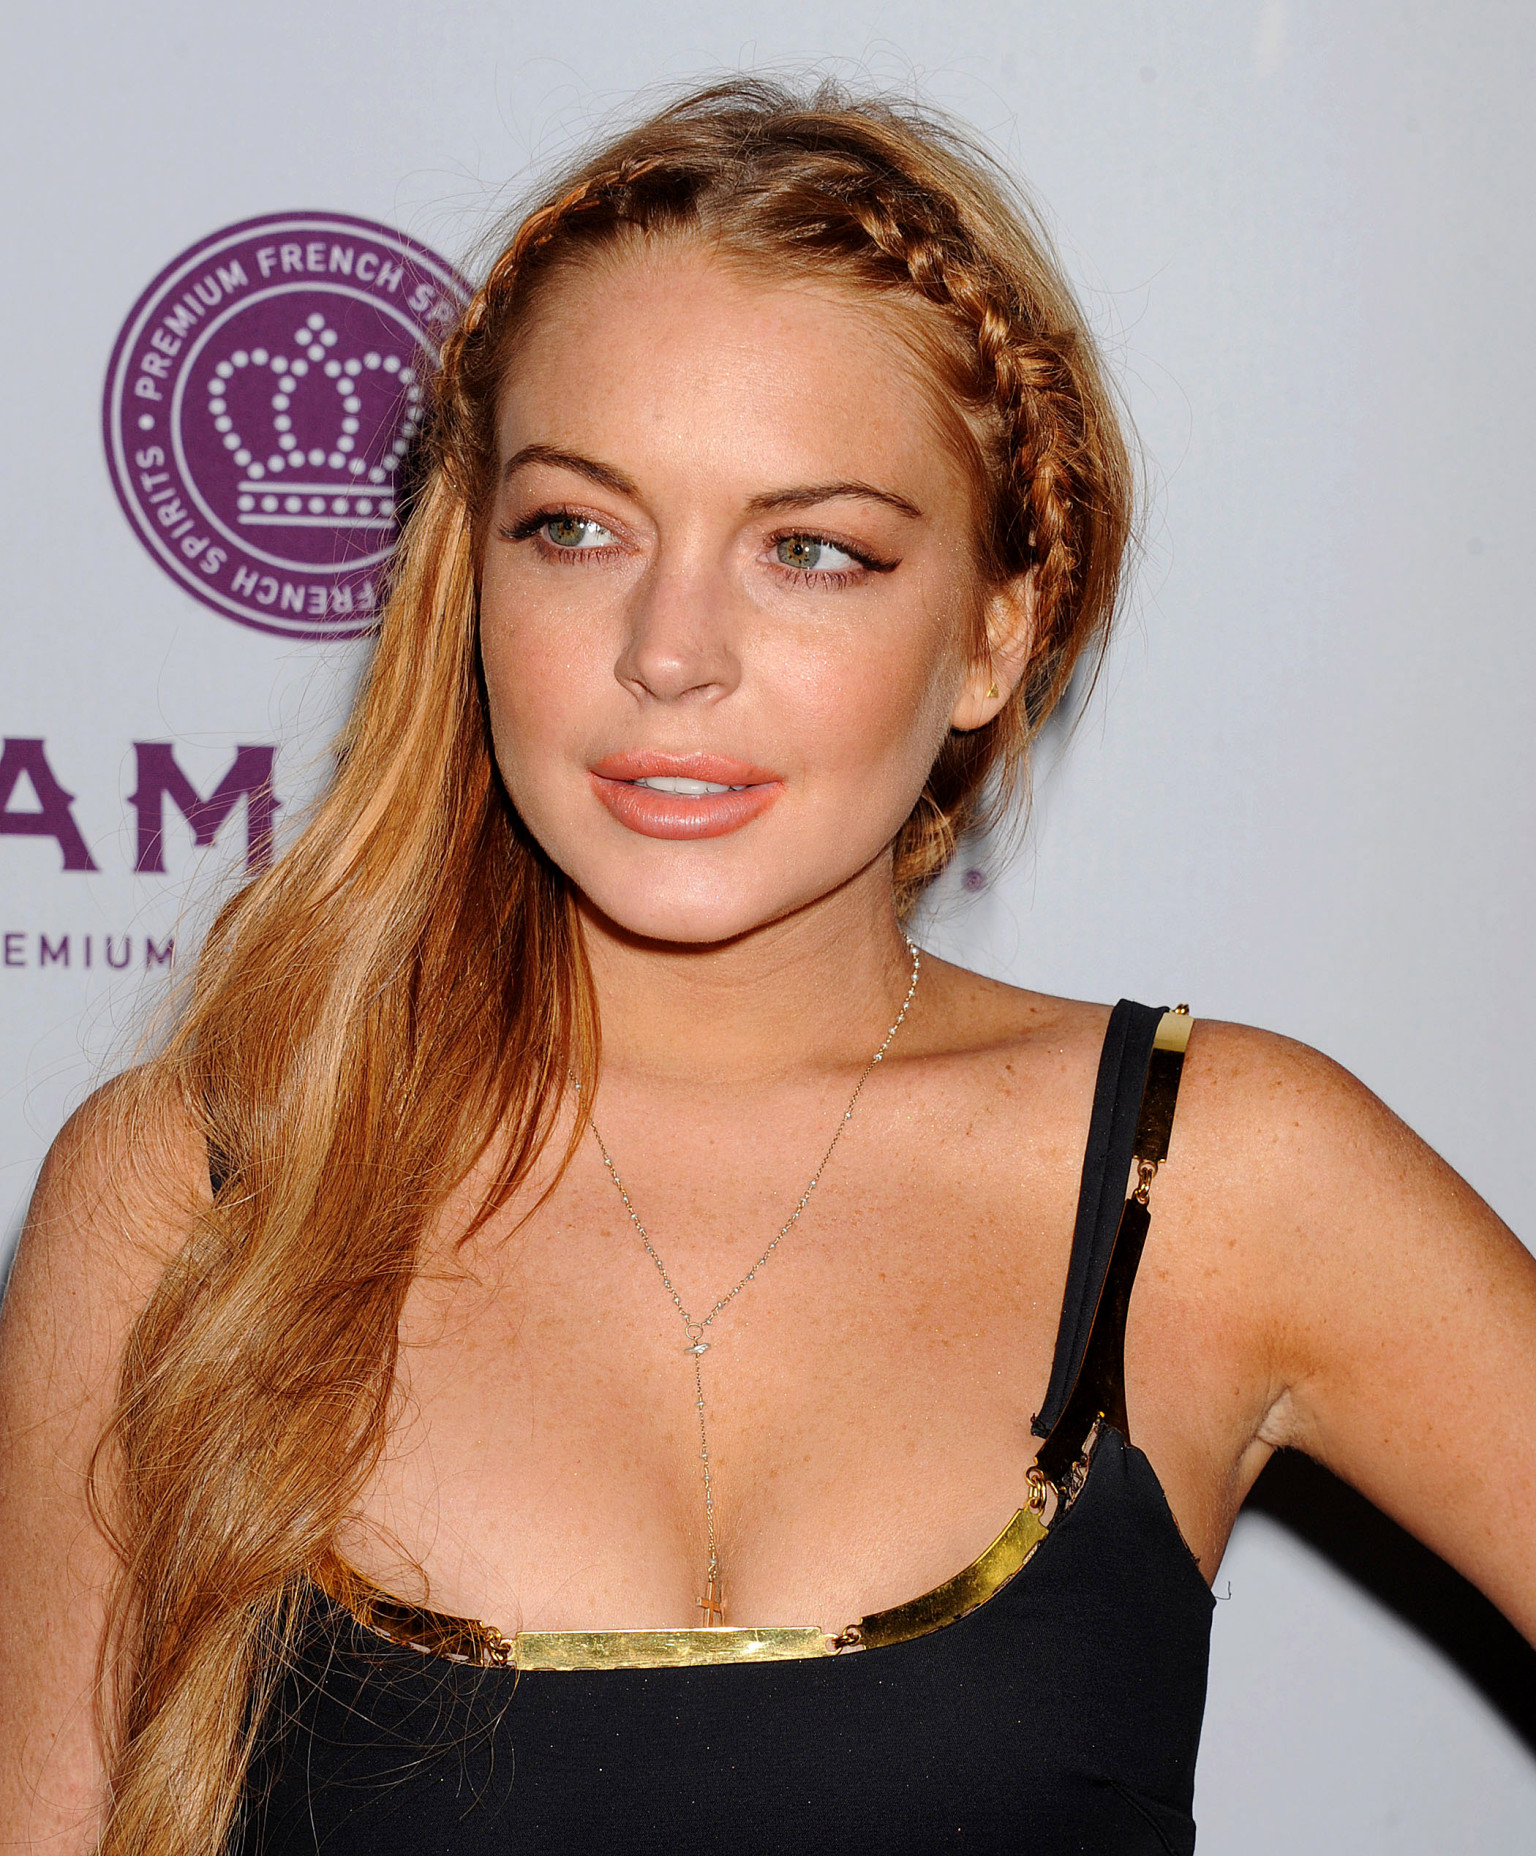 Lindsay Lohan Topless Photos From The Canyons Leak